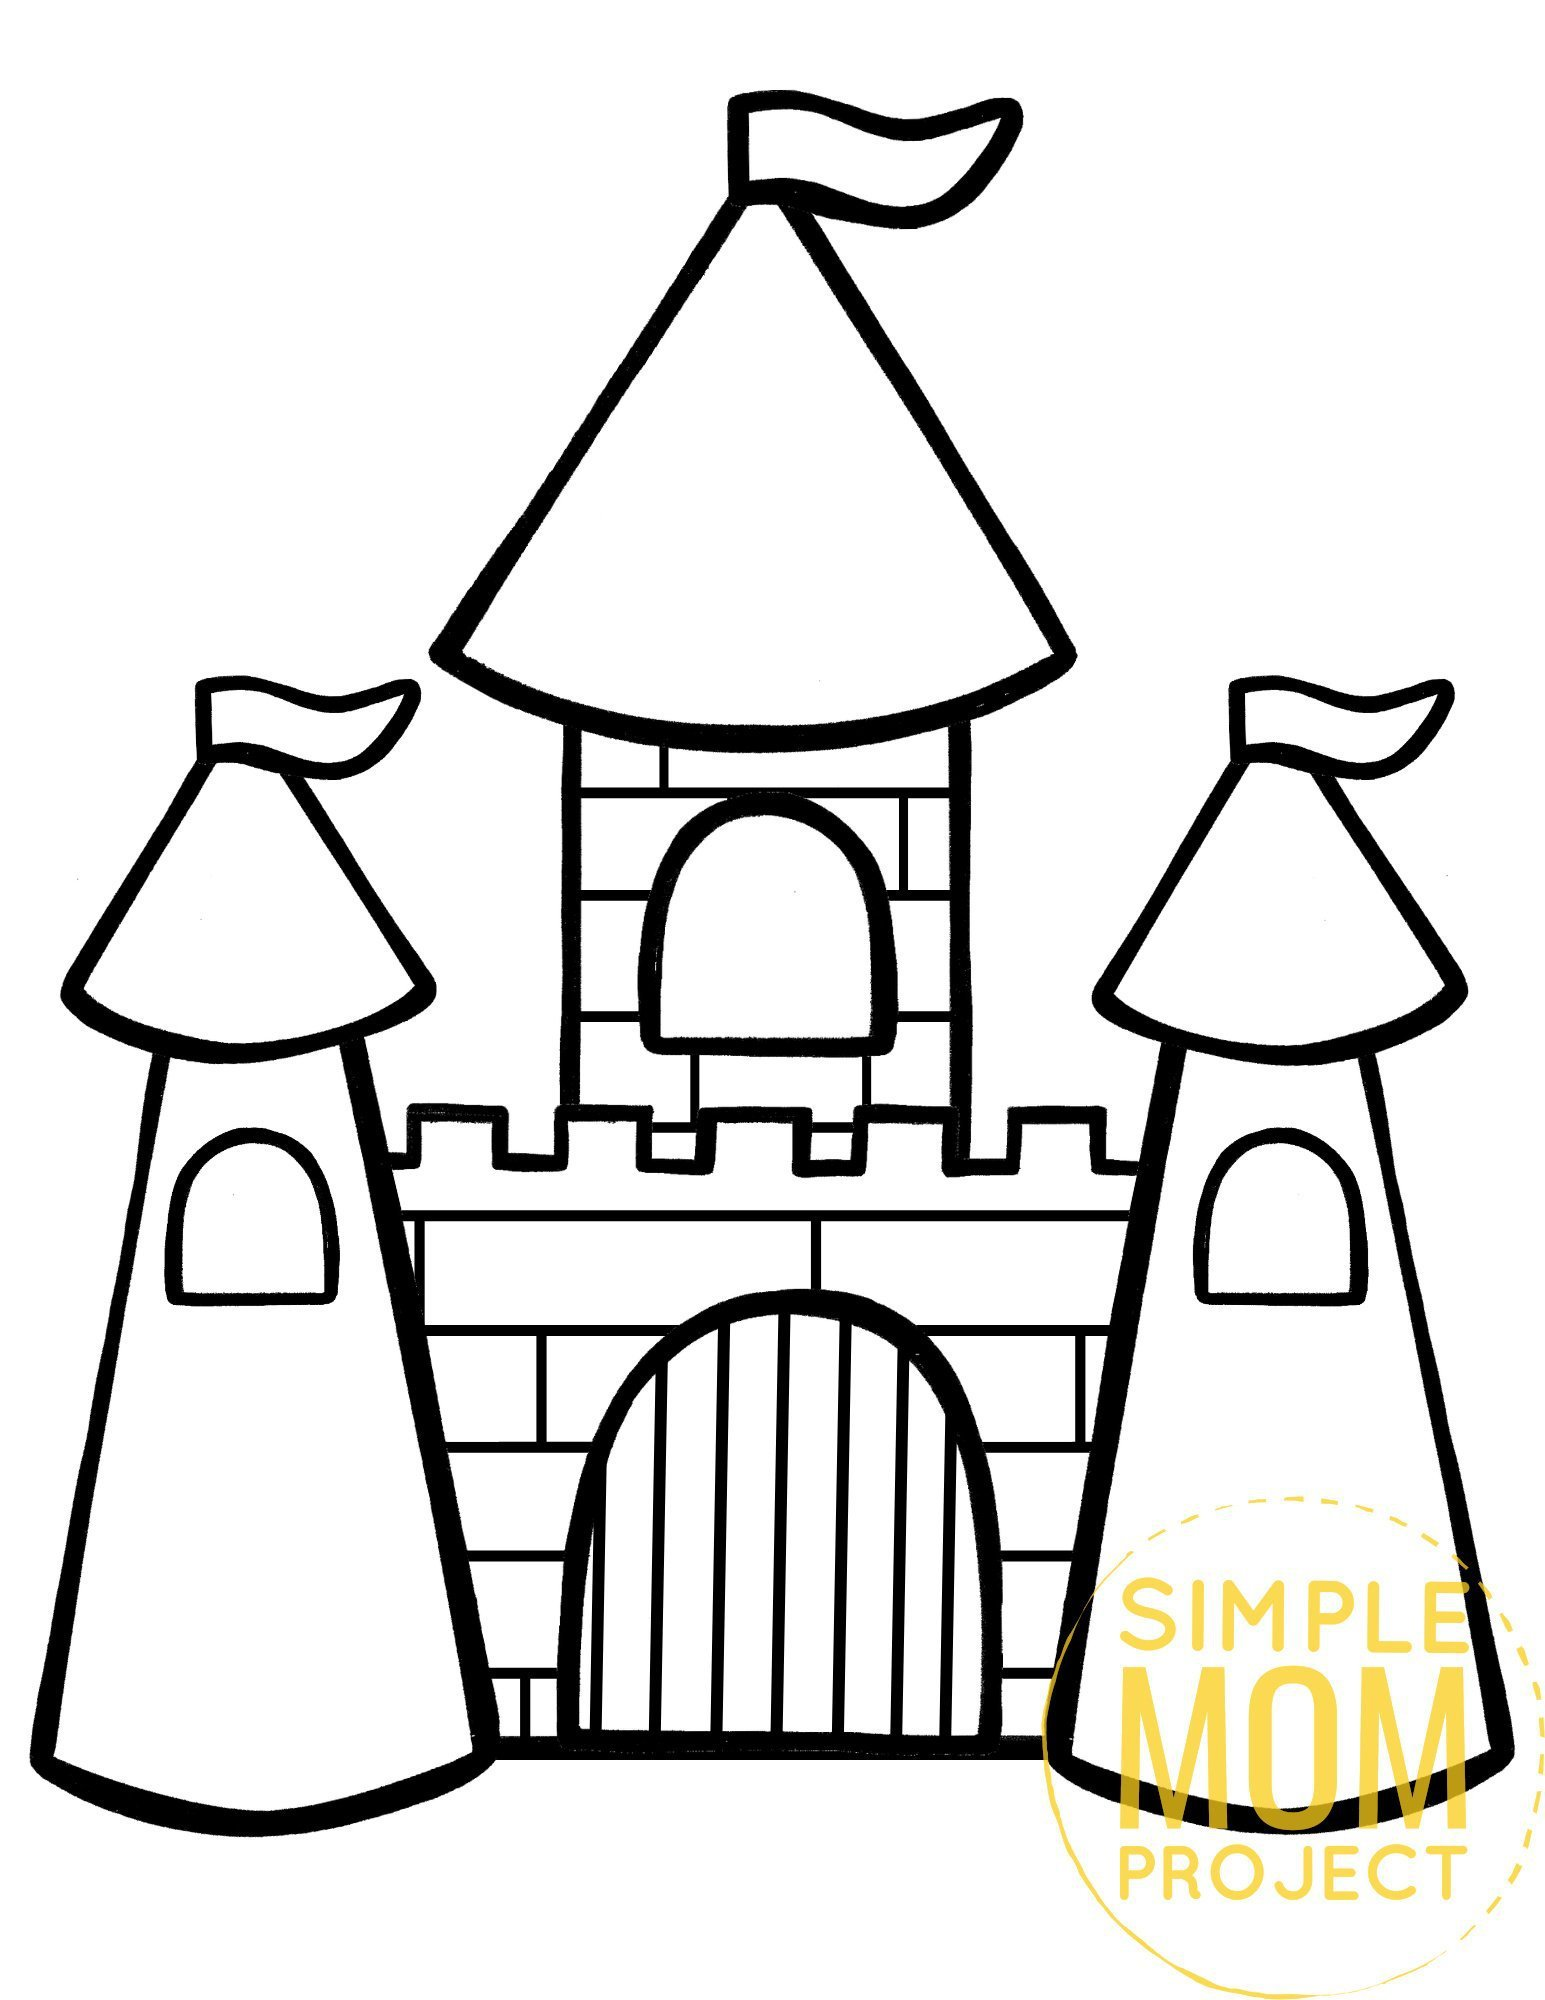 Free printable royal castle coloring page template for kids, preschoolers and kindergartners